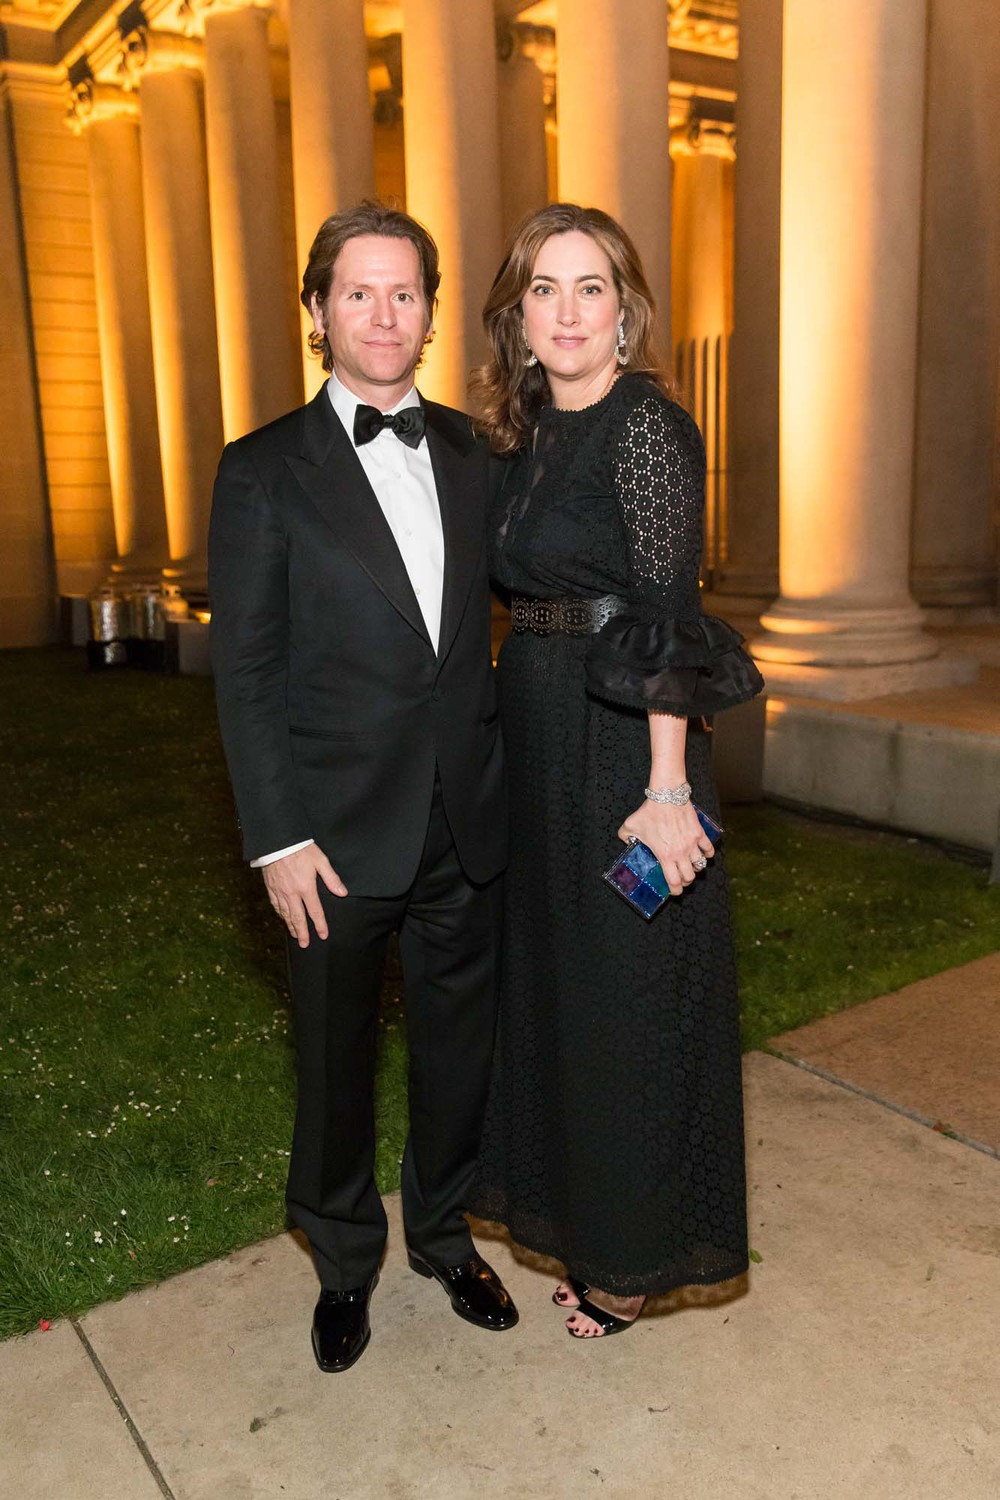 Trevor and Alexis Traina arriva at the Salvatore Ferragamo 2014 Mid-Winter gala to benefit the Fine Arts Museums, San Francisco, wearing Salvatore Ferragamo